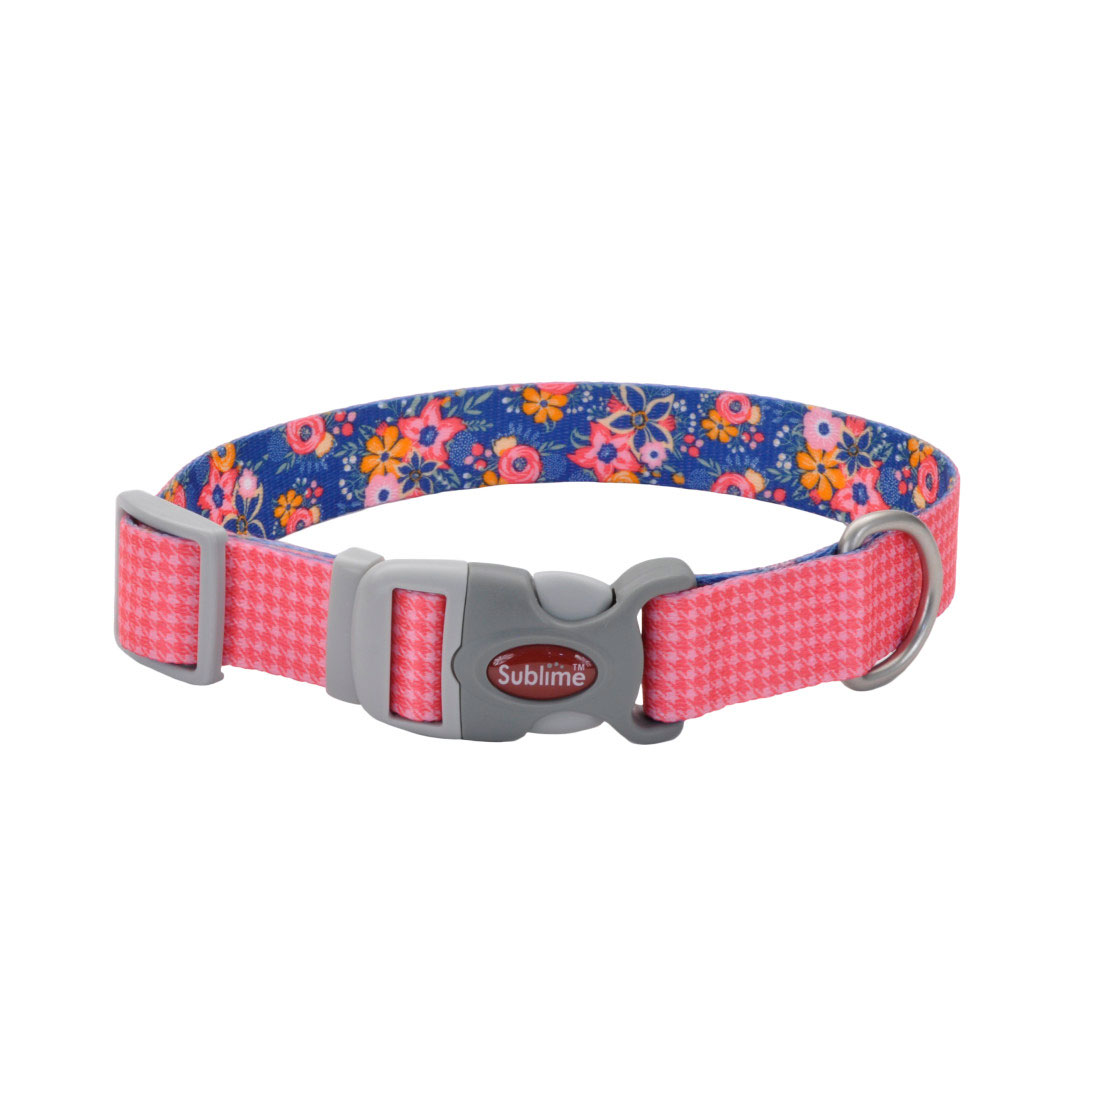 Sublime Adjustable Dog Collar, Pink Houndstooth, 1-in x 12-in-18-in